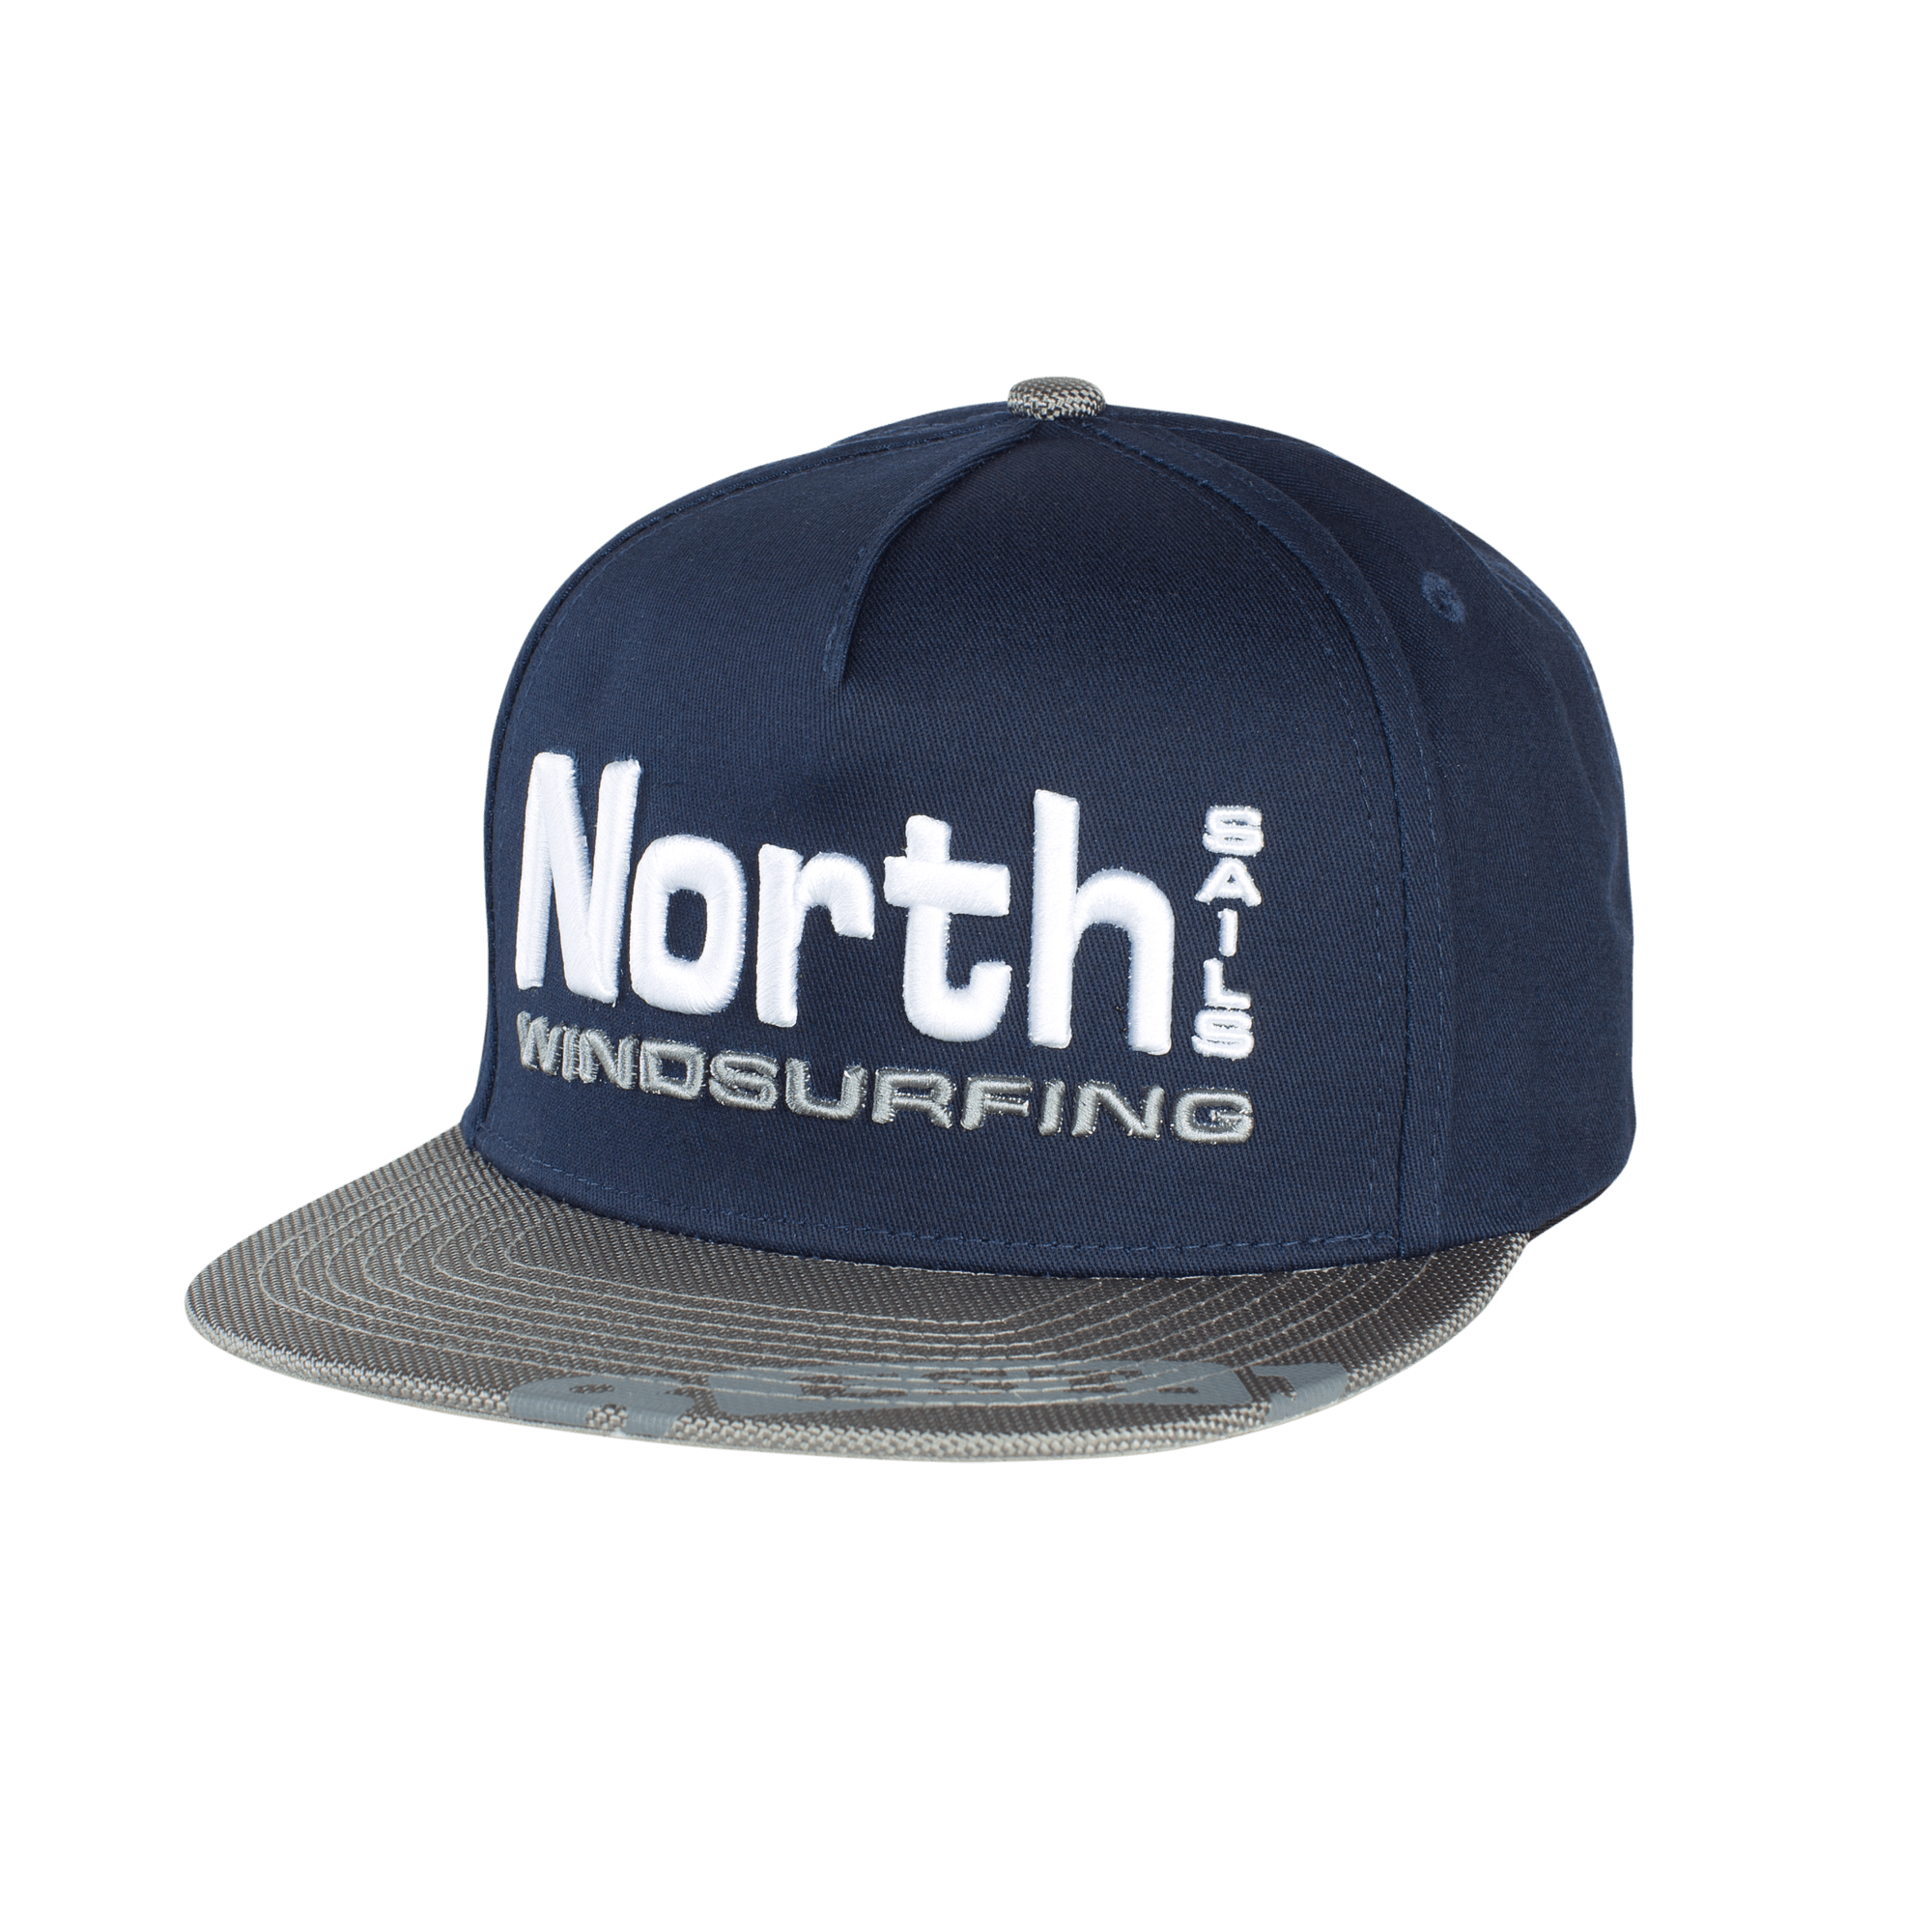 North Cap A-Frame